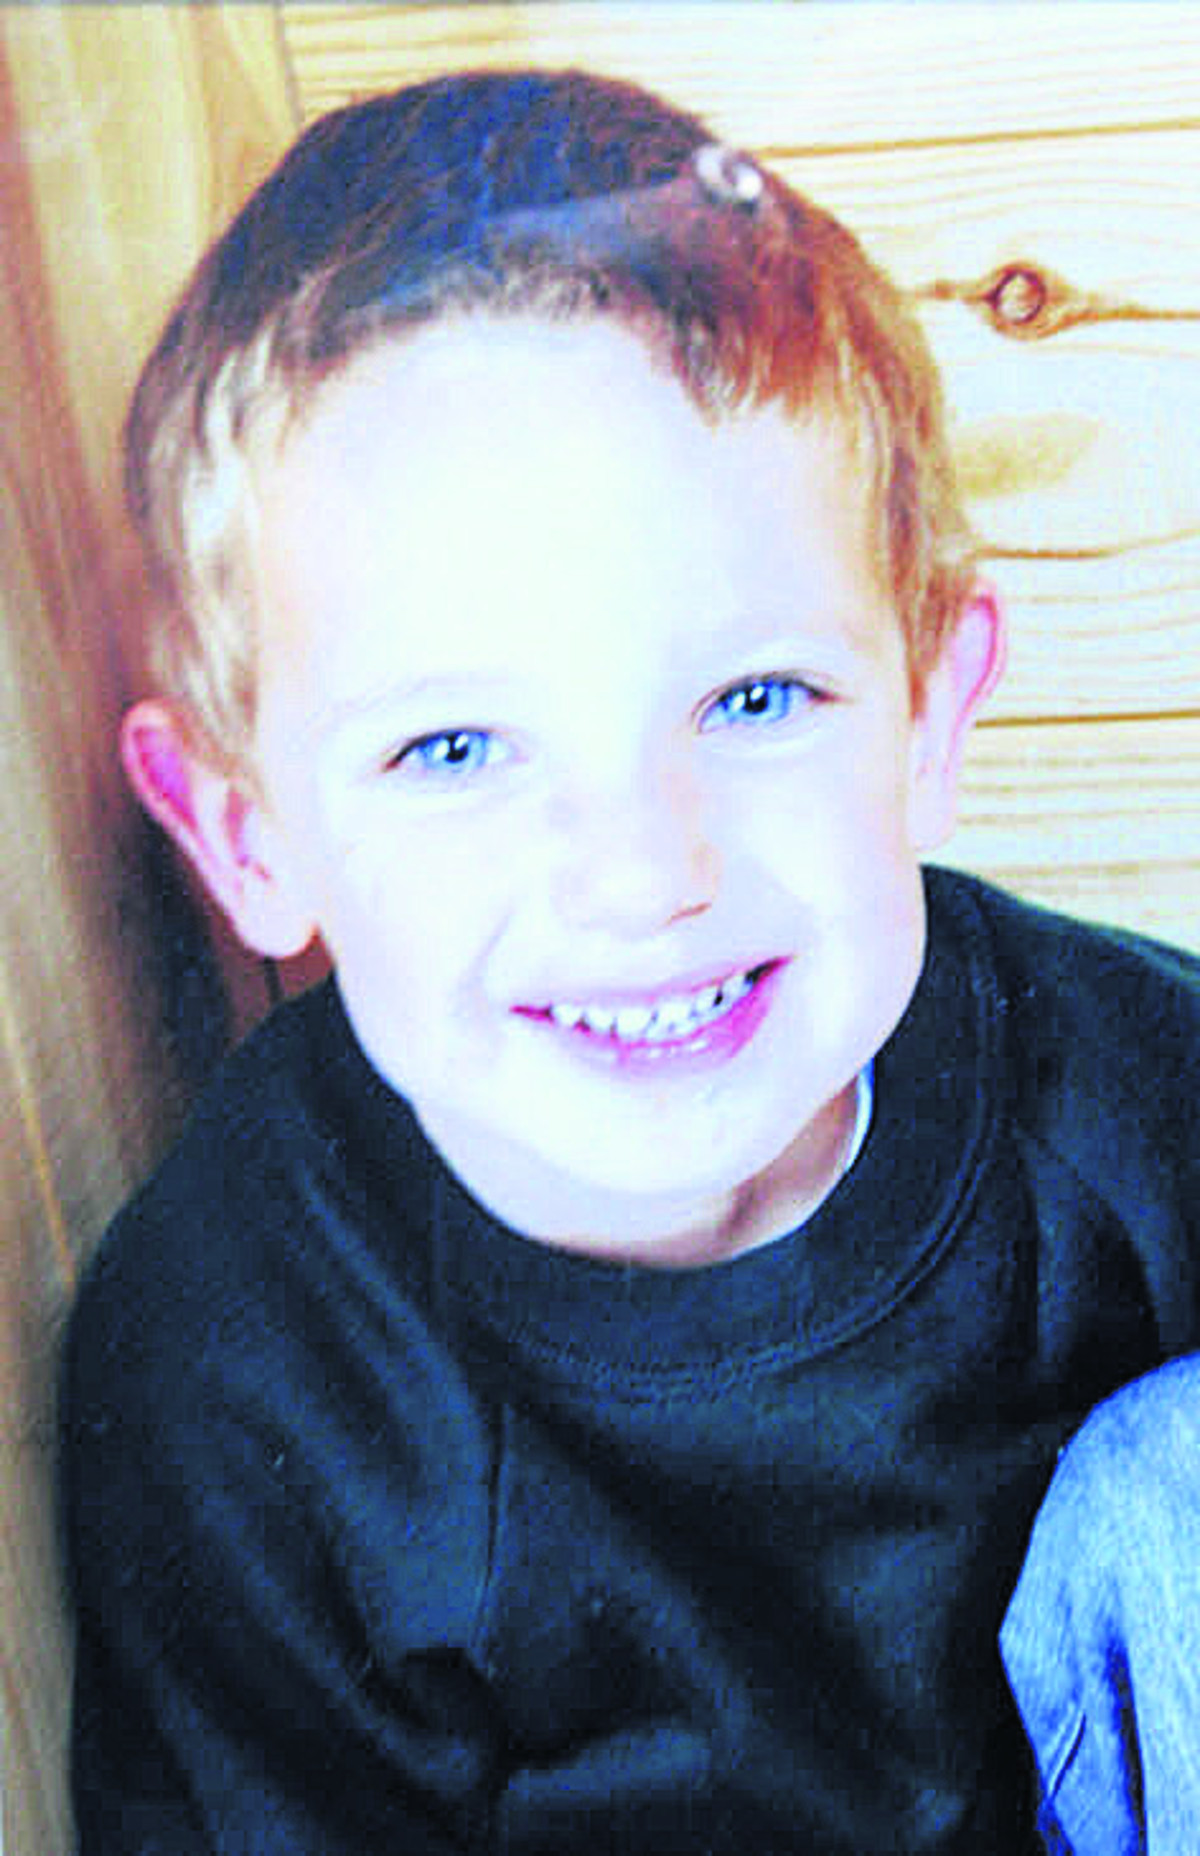 NHS review into hospital where Warminster youngster died